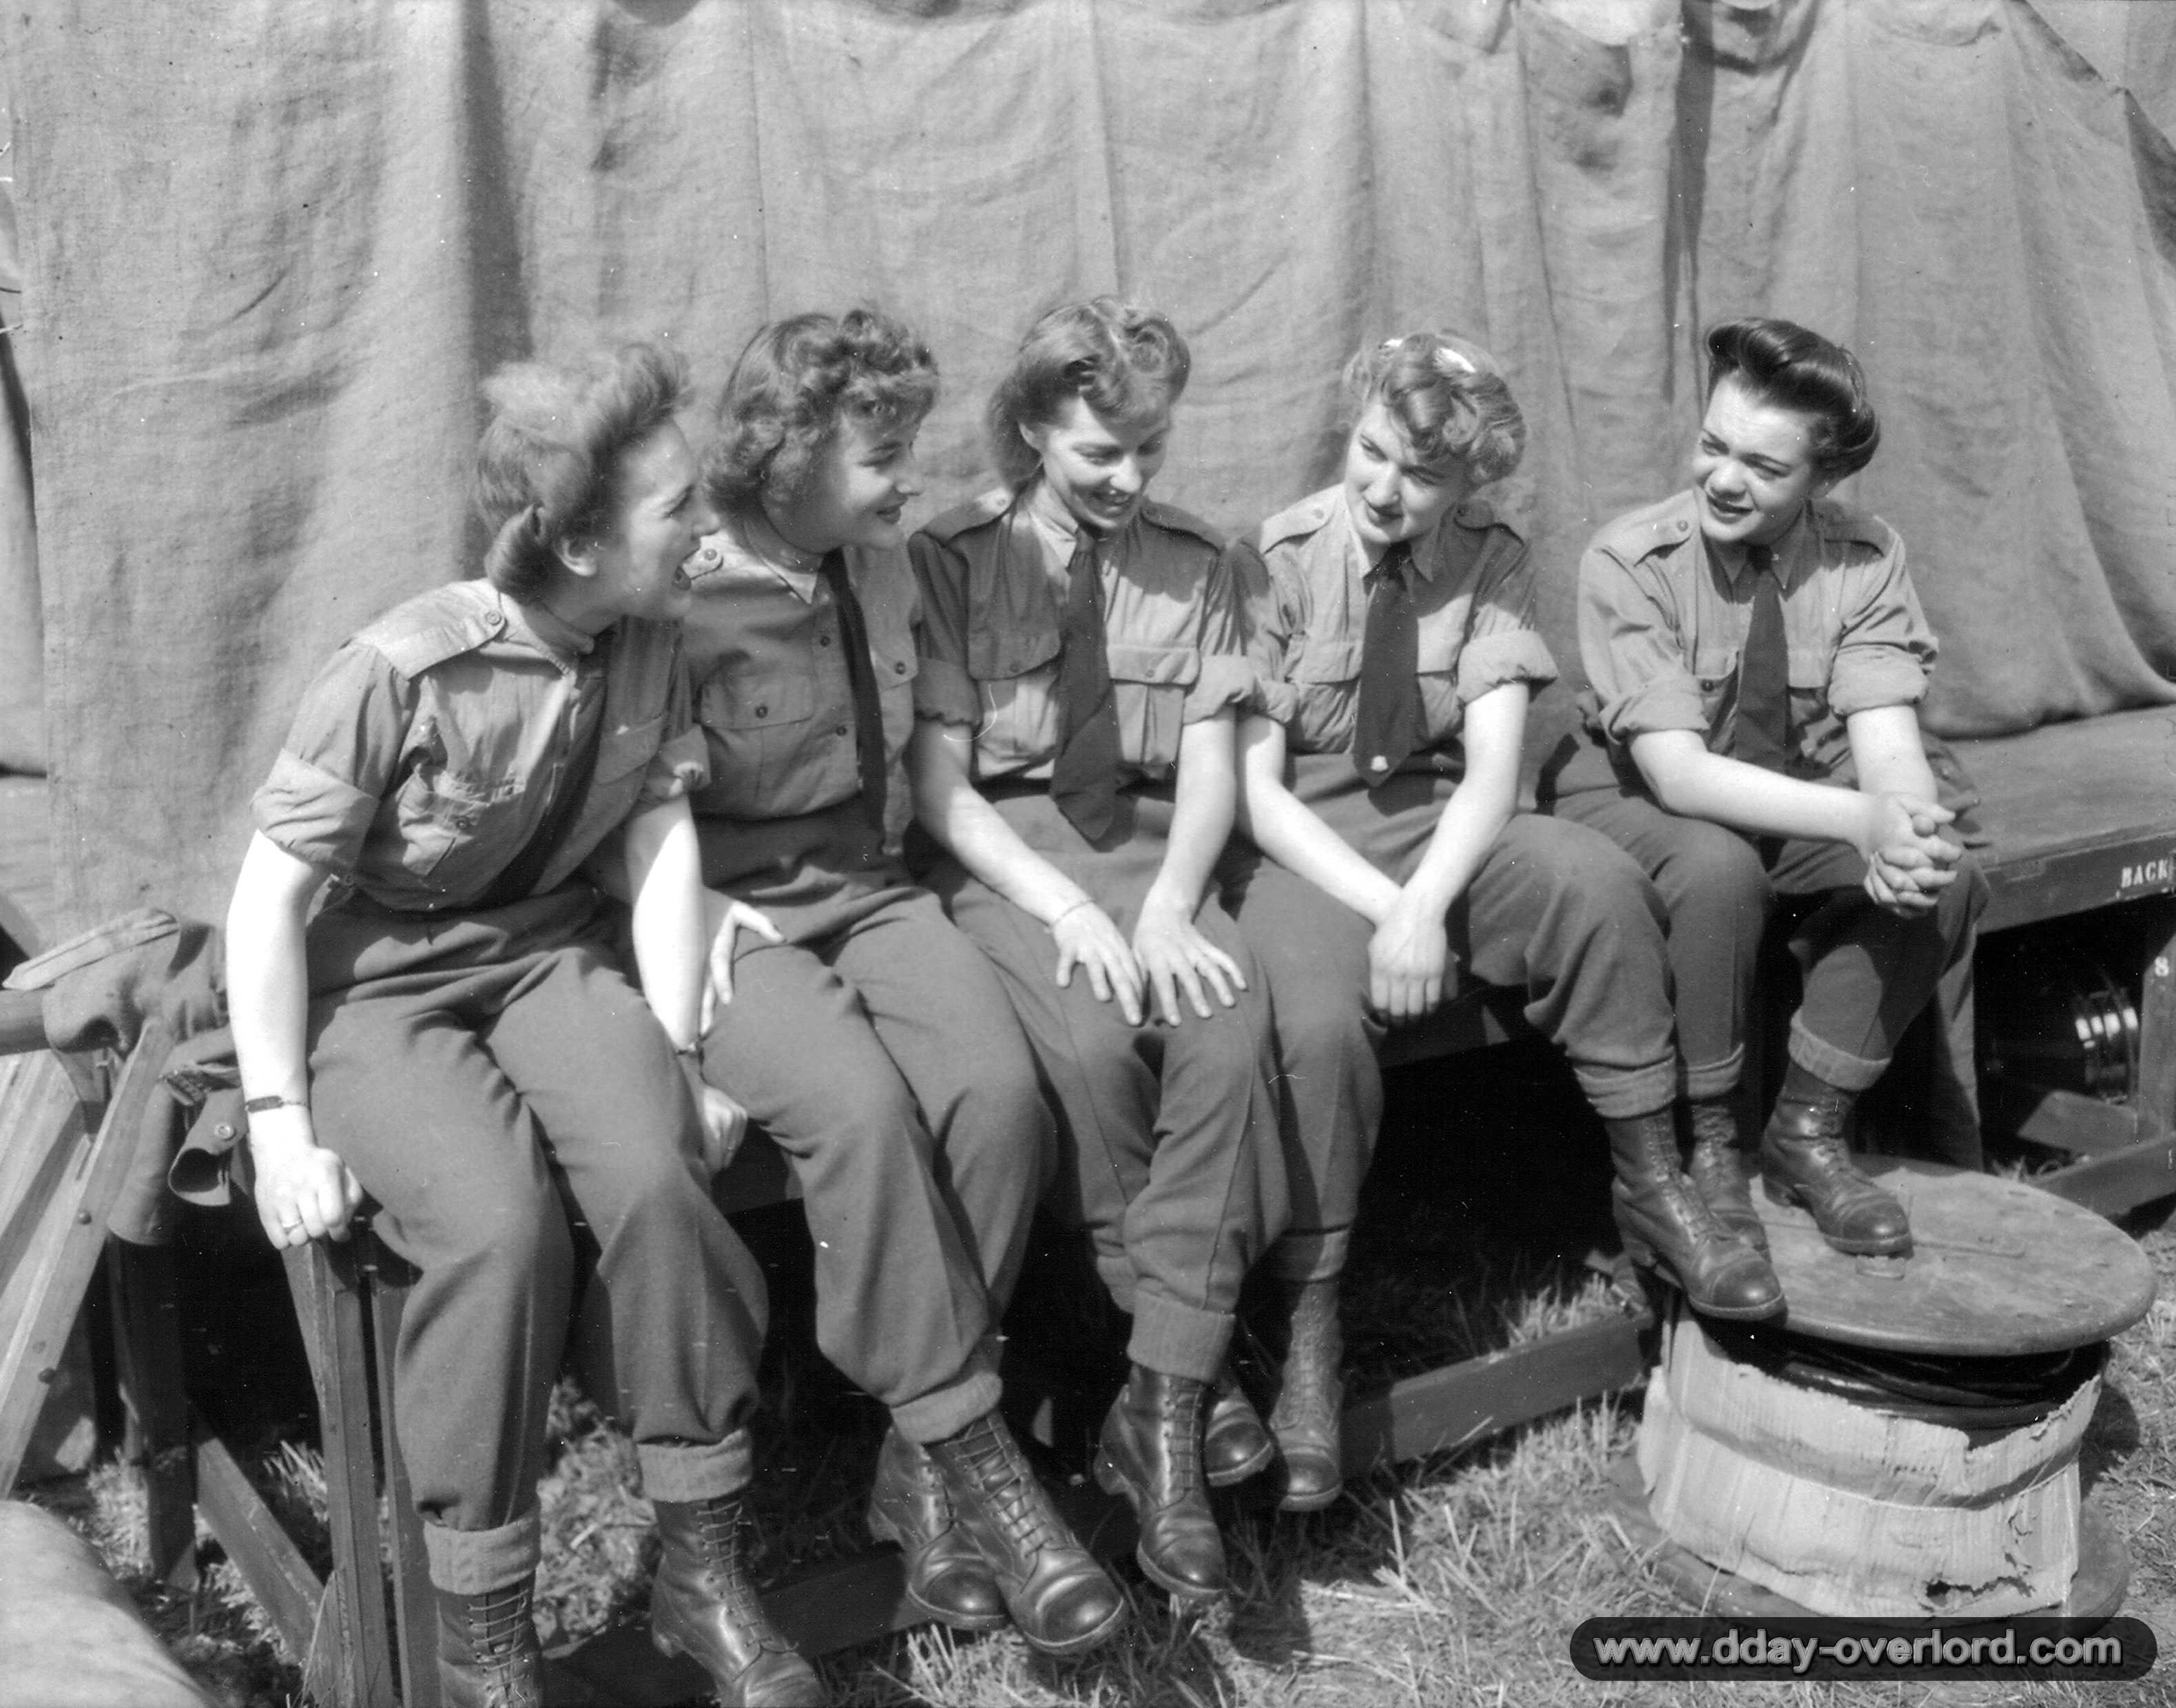 normandy women — an image not seen often at all this is a photo of women arriving, shortly after the men/soldiers did at normandy beach in 1944 these women were part of the red cross efforts which took place shortly after the invasion yes, we honor those men that stormed the beach that day, but let's honor these lovely ladies for doing the same—to help.